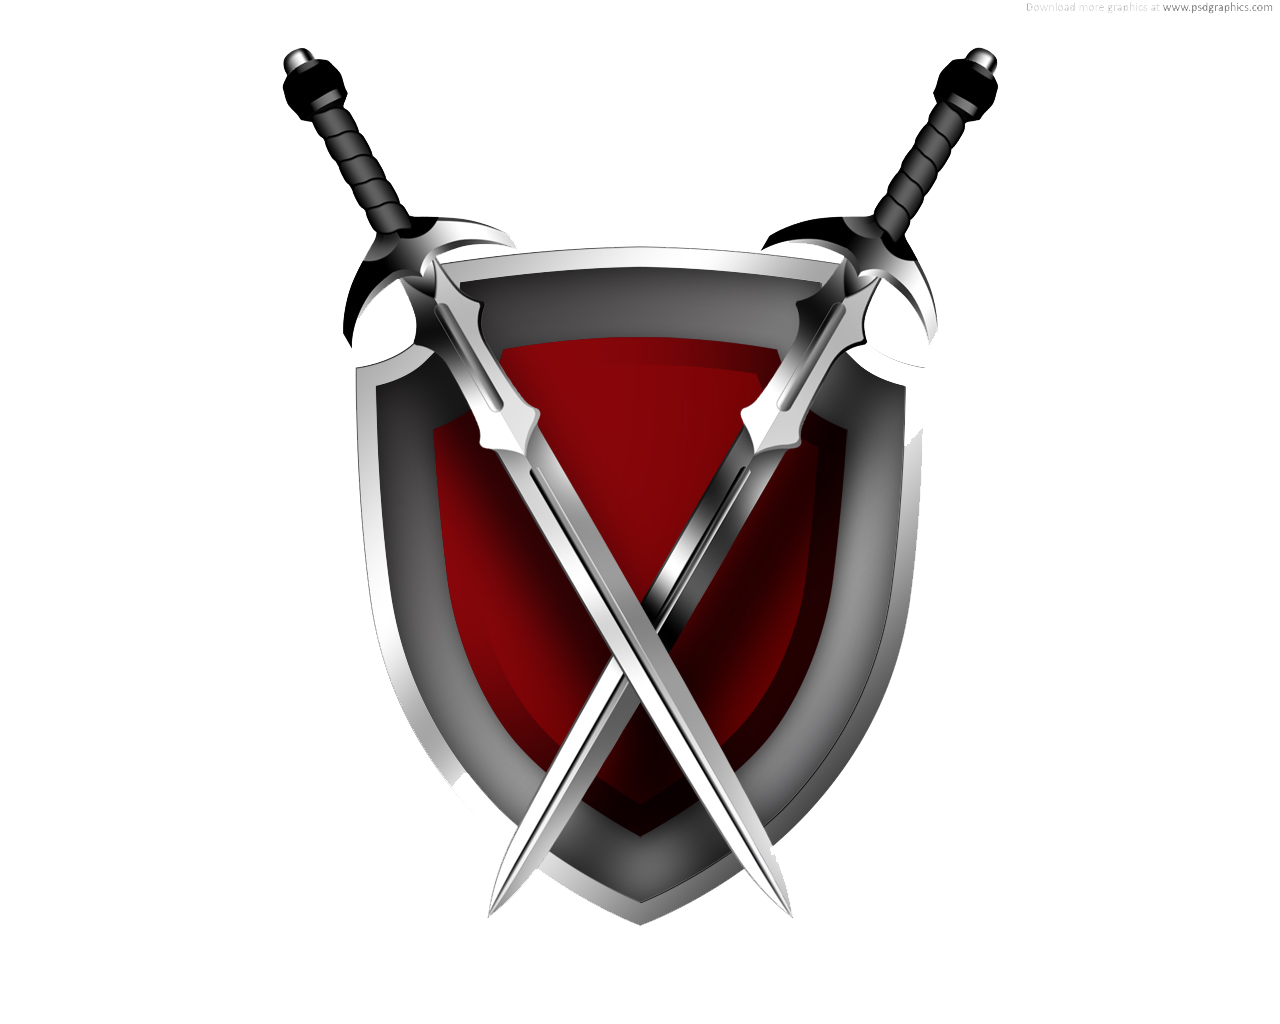 Crossed Swords Png (+).